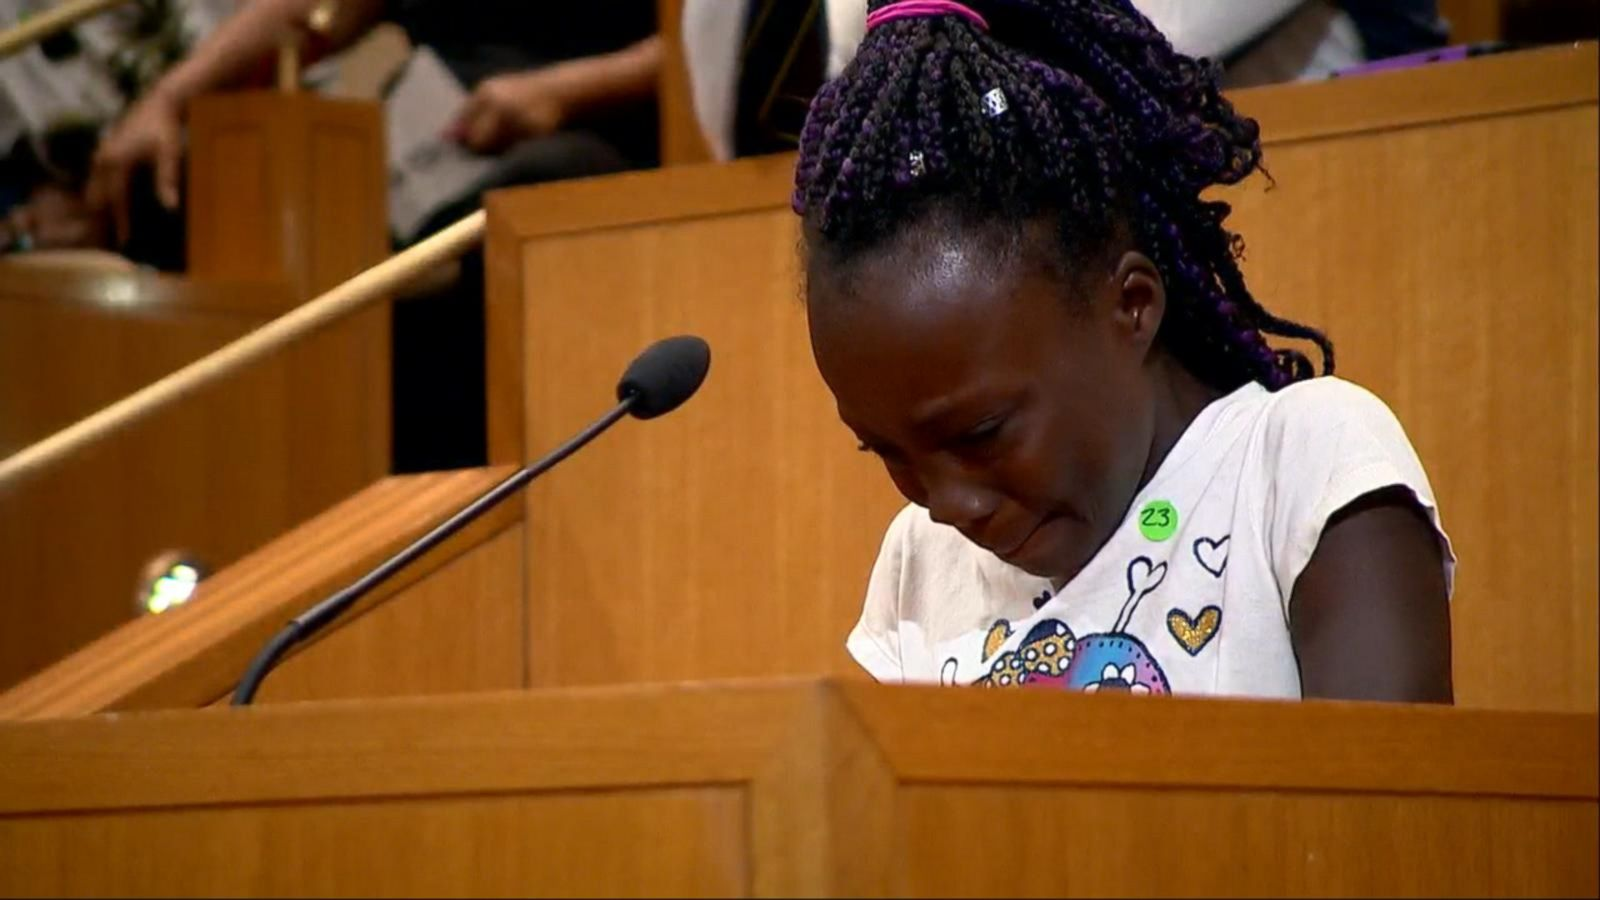 VIDEO: 9-Year-Old Speaks Out on Charlotte Unrest